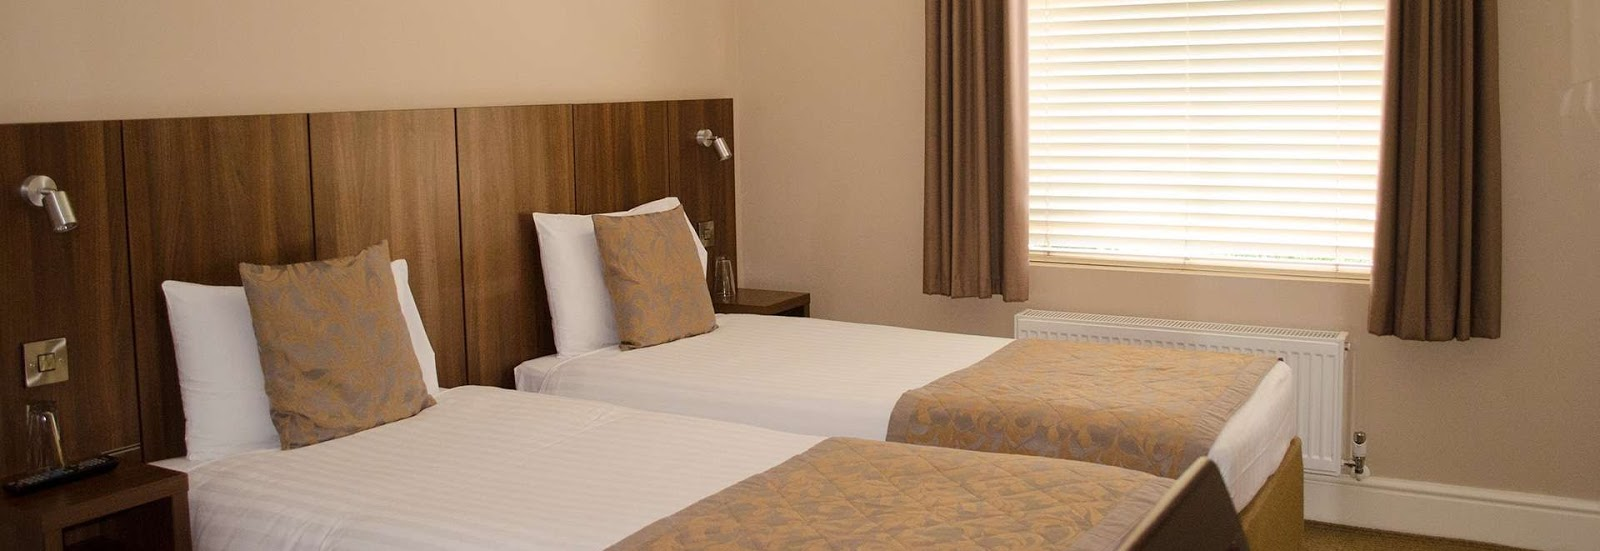 two bedrooms in a hotel room with white bedding and brown throw blankets